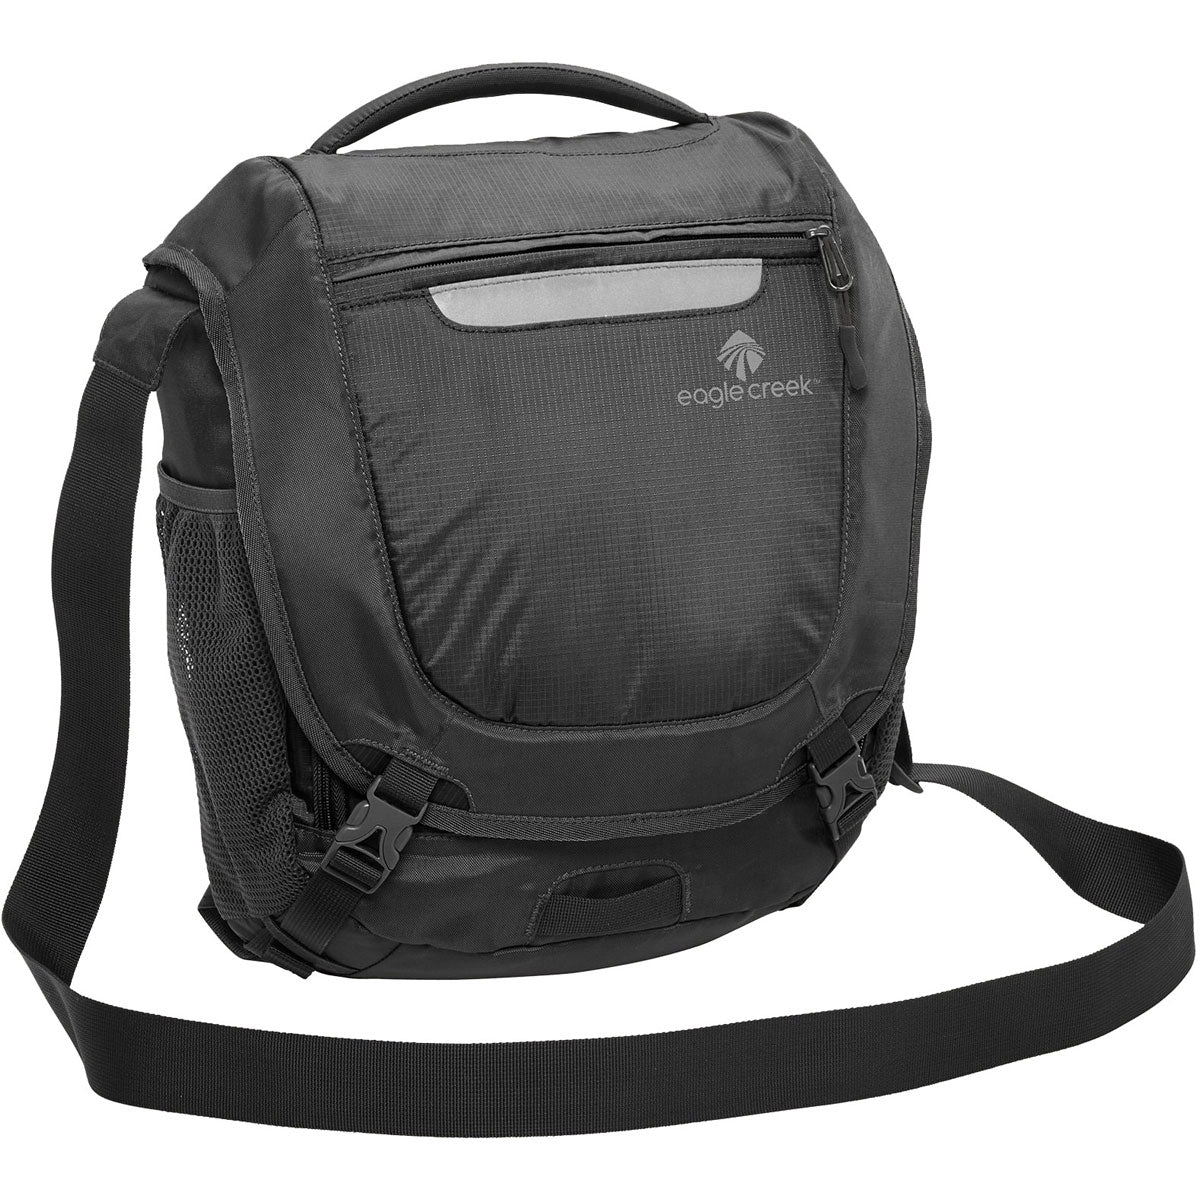 Eagle Creek Catch-All Courier Pack